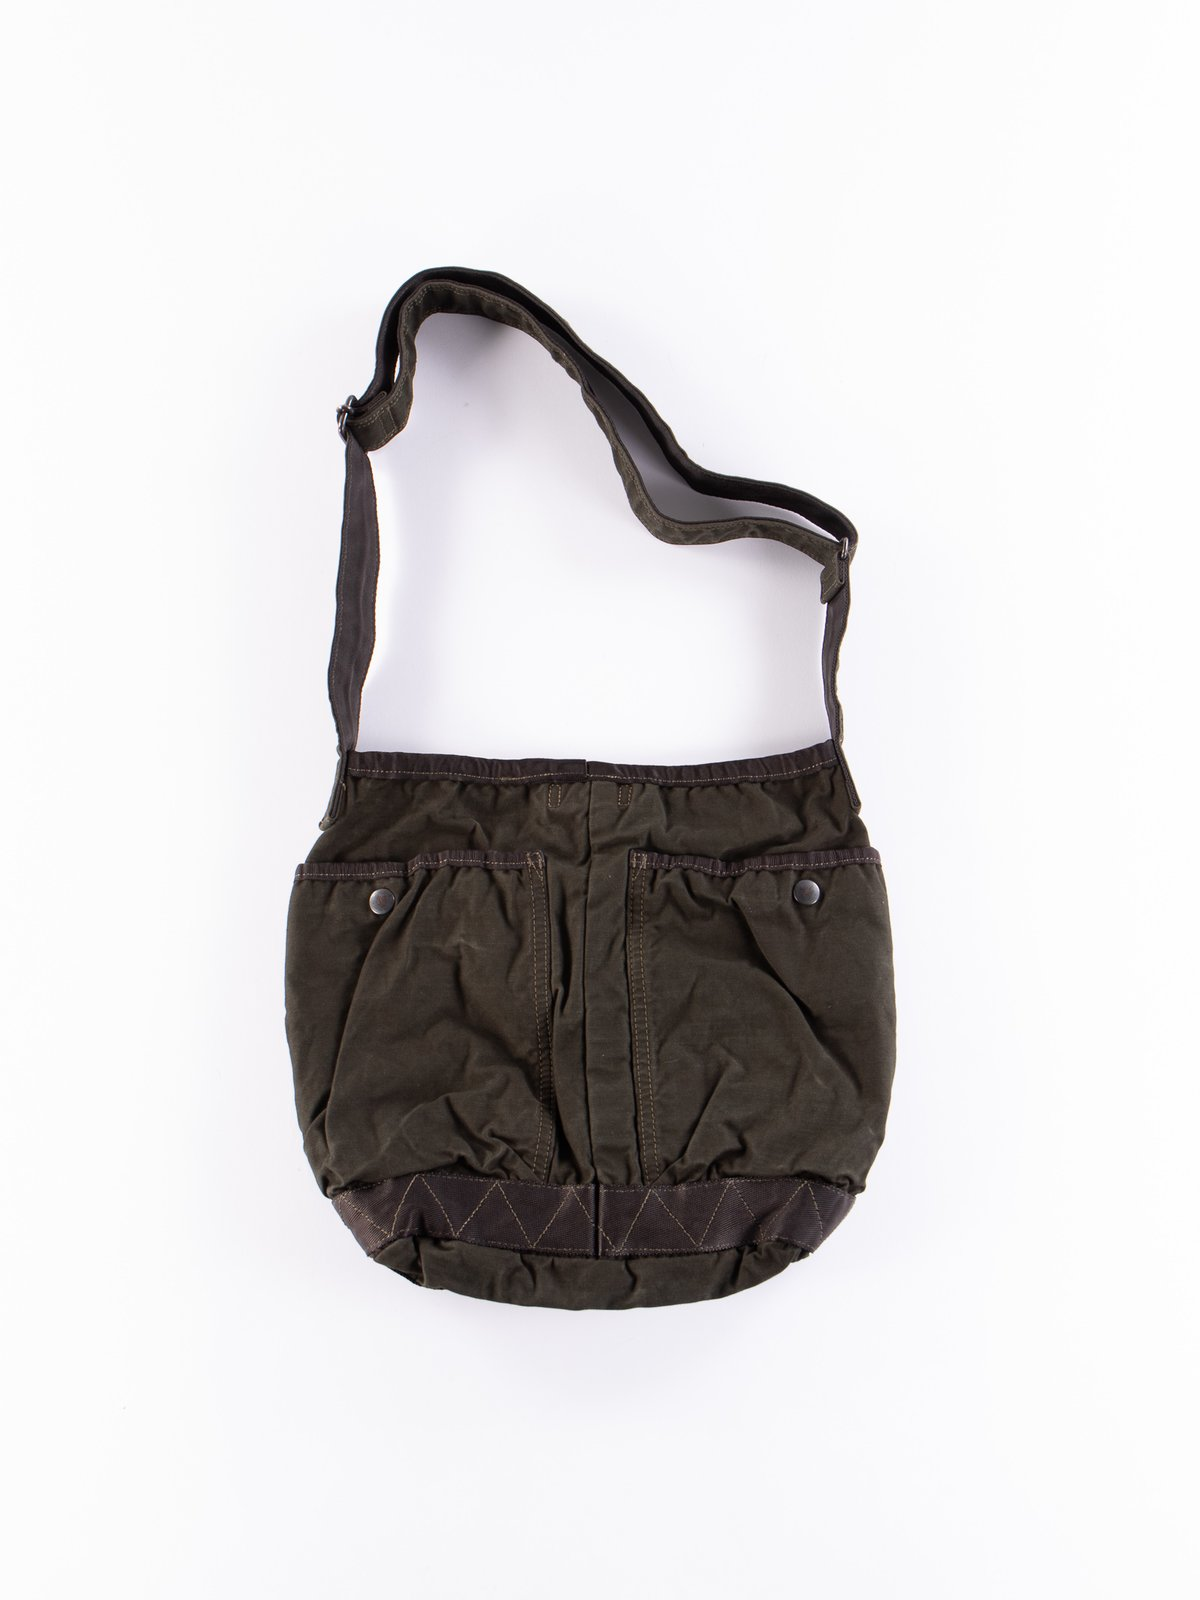 Khaki Crag Shoulder Bag Small - Image 2